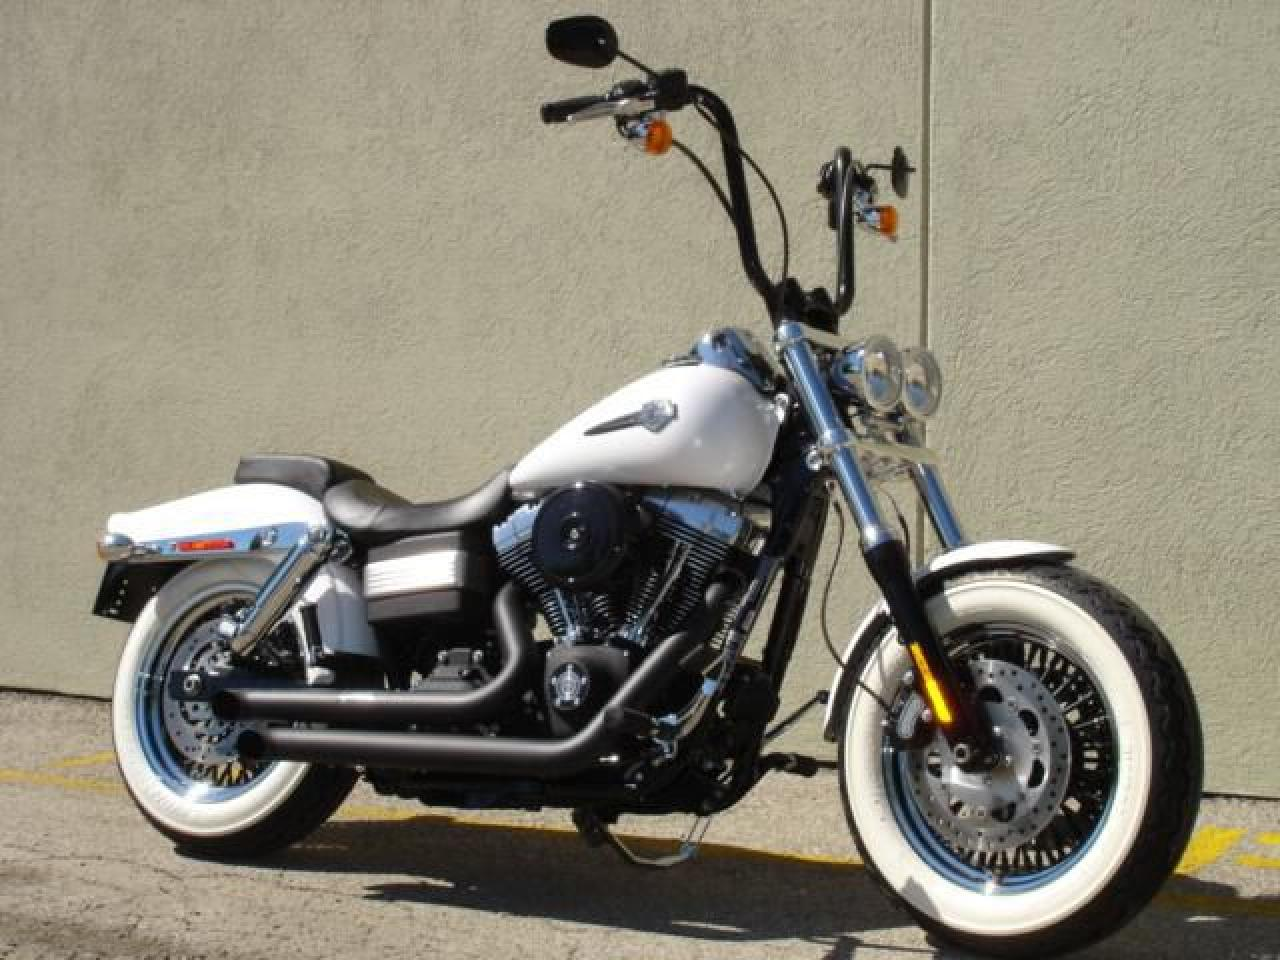 2011 harley davidson fxdf fat bob moto zombdrive com. Black Bedroom Furniture Sets. Home Design Ideas